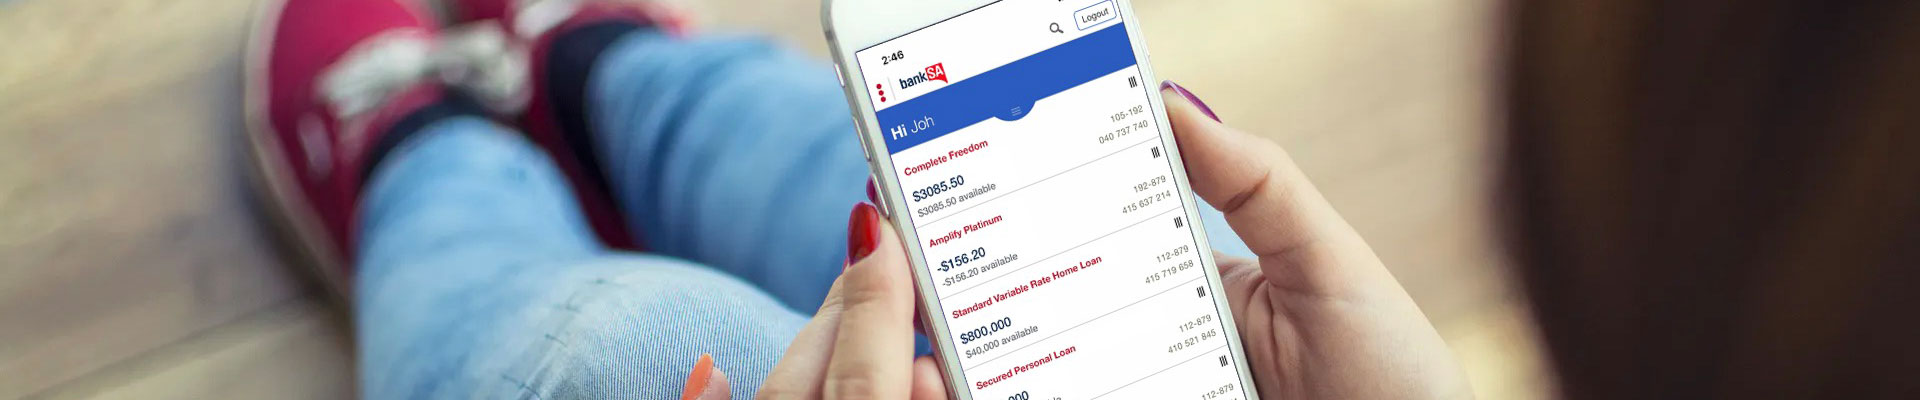 Viewing bank accounts on mobile banking